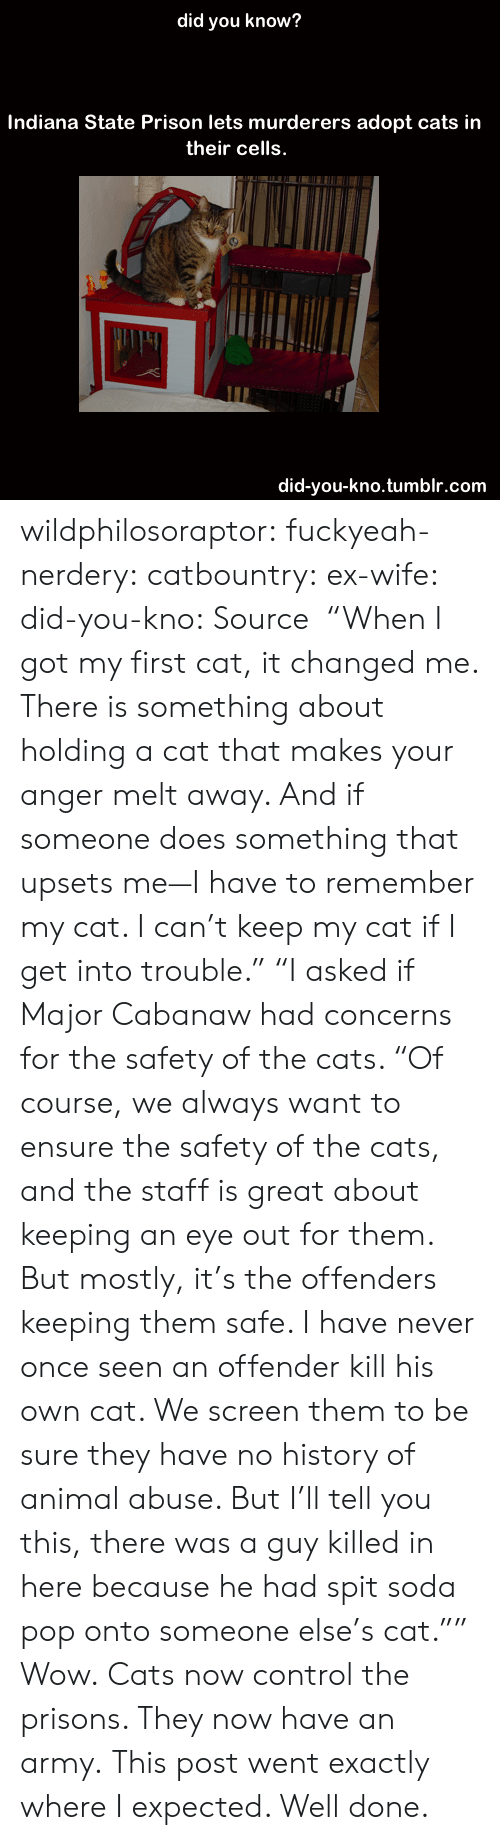 """Animal Abuse: did you know?  Indiana State Prison lets murderers adopt cats in  their cells.  did-you-kno.tumblr.com wildphilosoraptor:   fuckyeah-nerdery:  catbountry:  ex-wife:  did-you-kno:  Source  """"When I got my first cat, it changed me. There is something about holding a cat that makes your anger melt away. And if someone does something that upsets me—I have to remember my cat. I can't keep my cat if I get into trouble.""""  """"I asked if Major Cabanaw had concerns for the safety of the cats. """"Of course, we always want to ensure the safety of the cats, and the staff is great about keeping an eye out for them. But mostly, it's the offenders keeping them safe. I have never once seen an offender kill his own cat. We screen them to be sure they have no history of animal abuse. But I'll tell you this, there was a guy killed in here because he had spit soda pop onto someone else's cat."""""""" Wow.  Cats now control the prisons. They now have an army.  This post went exactly where I expected. Well done."""